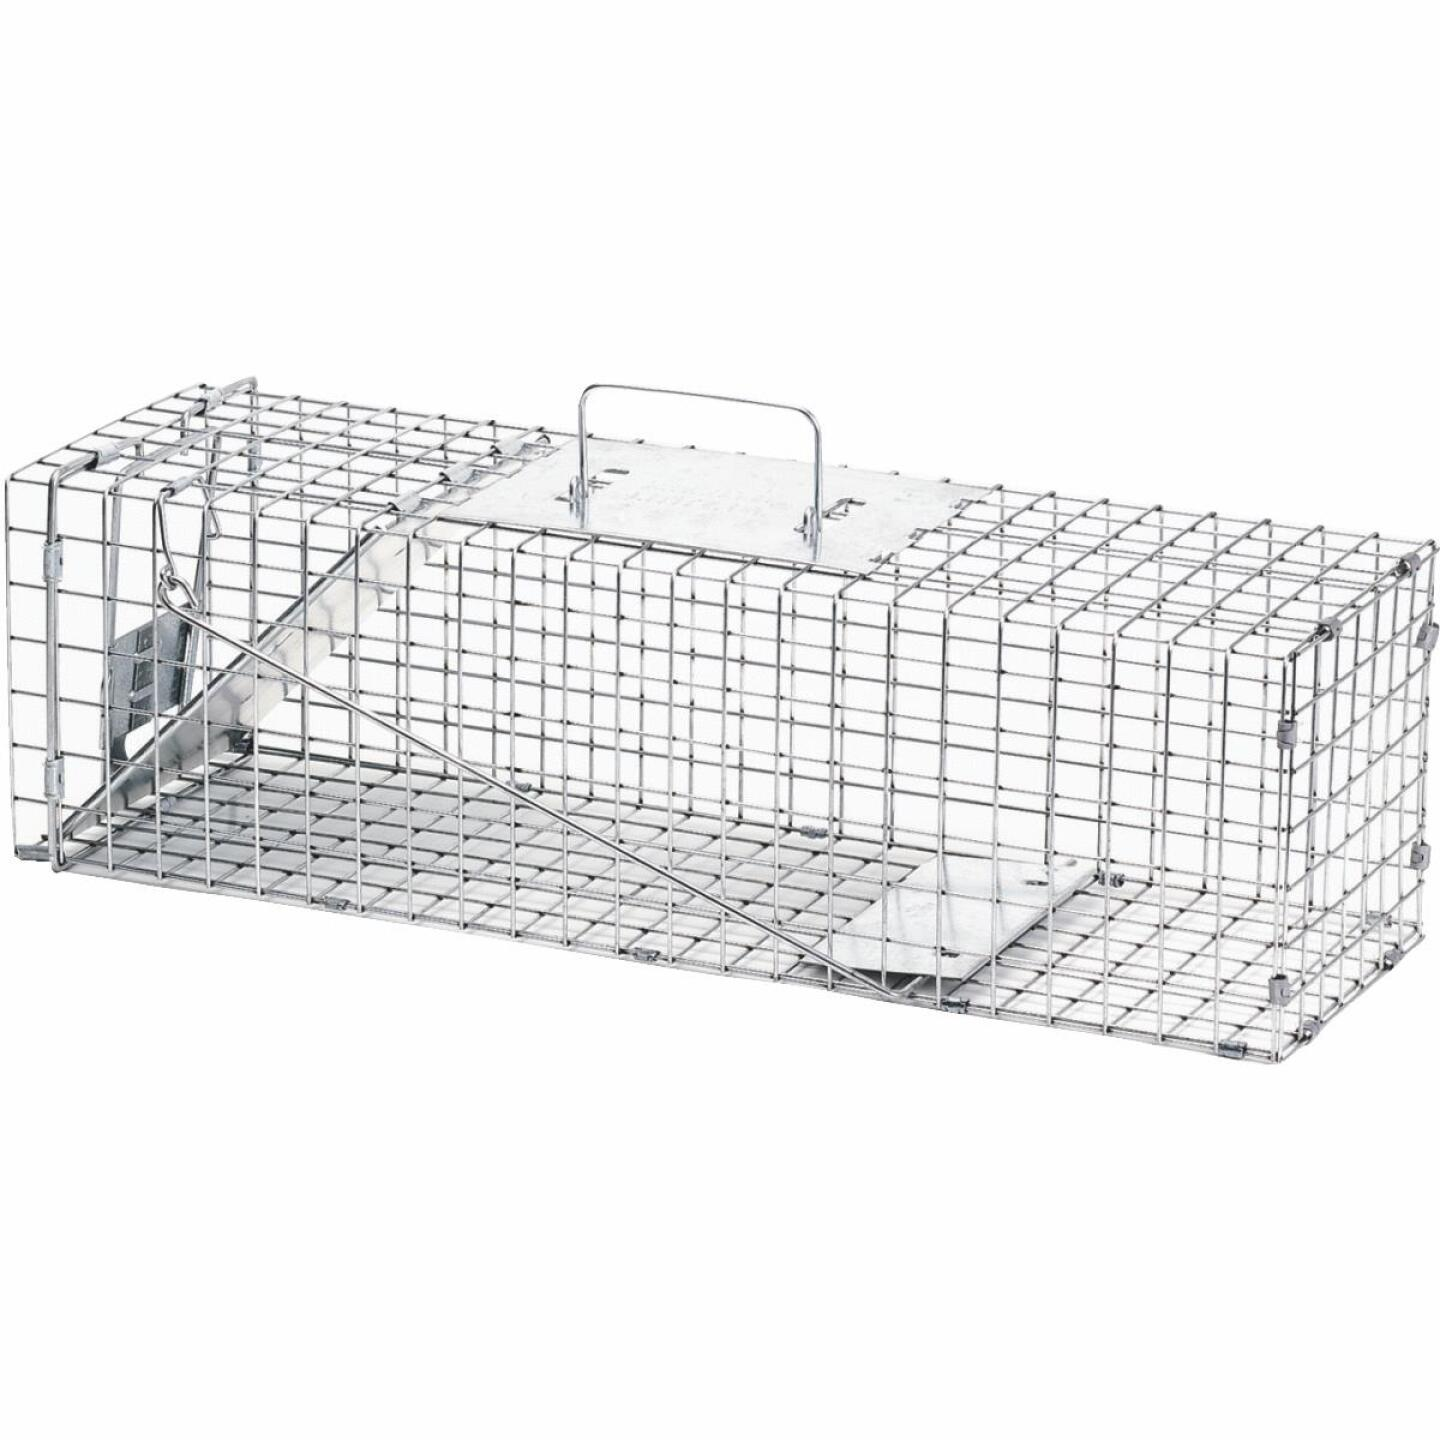 Havahart Professional Galvanized Steel 24 In. Medium Live Animal Trap Image 1